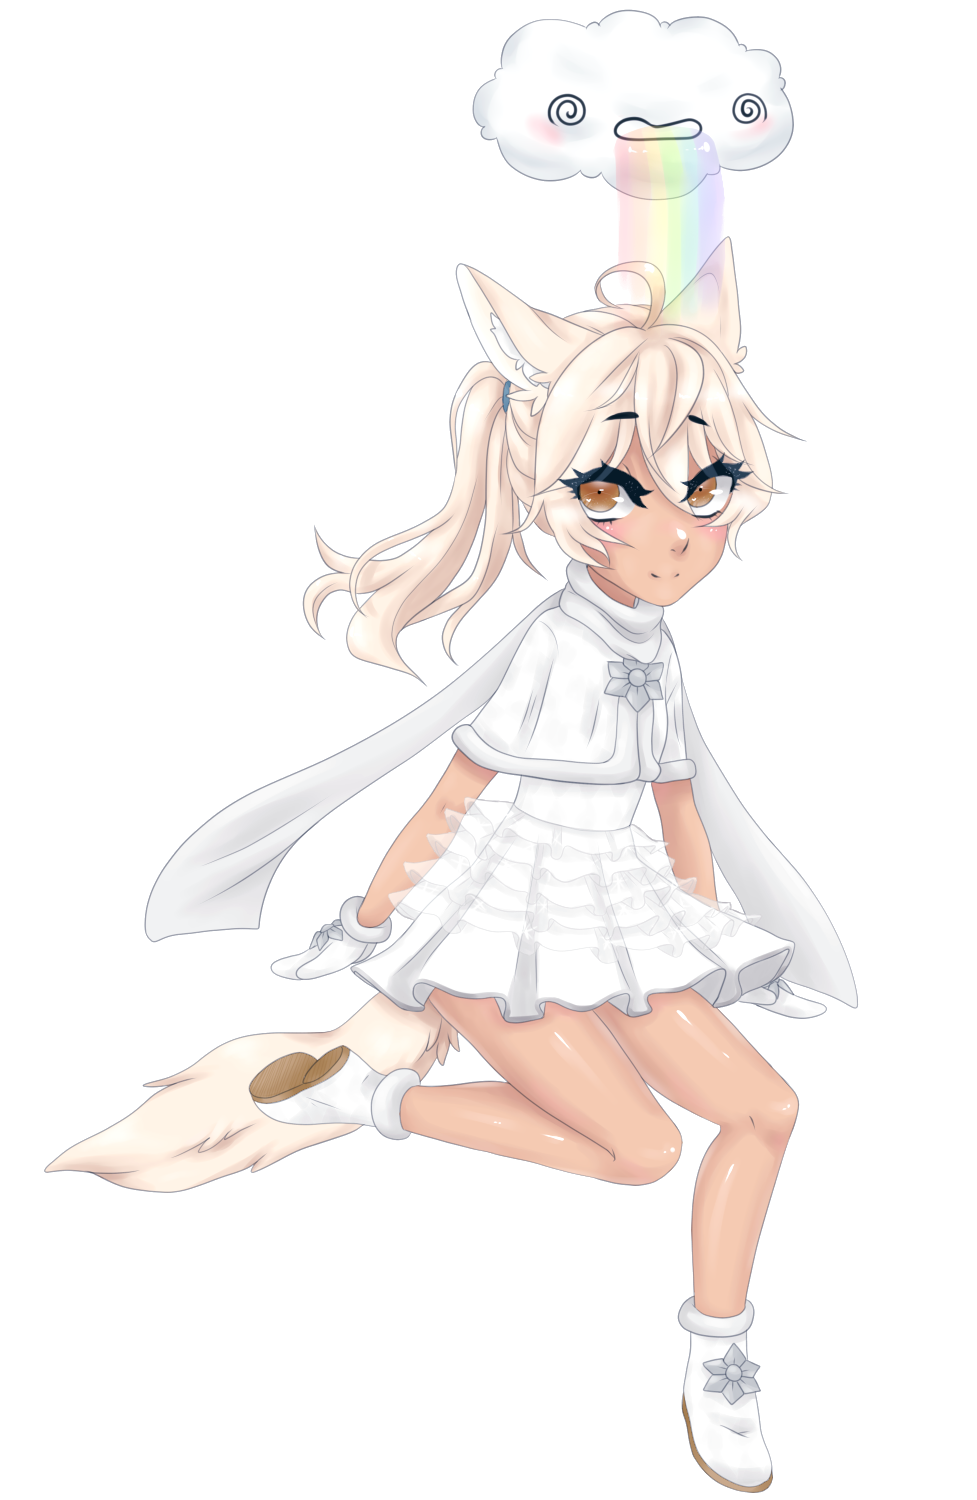 allize_2_by_hachima-dbb51sx.png